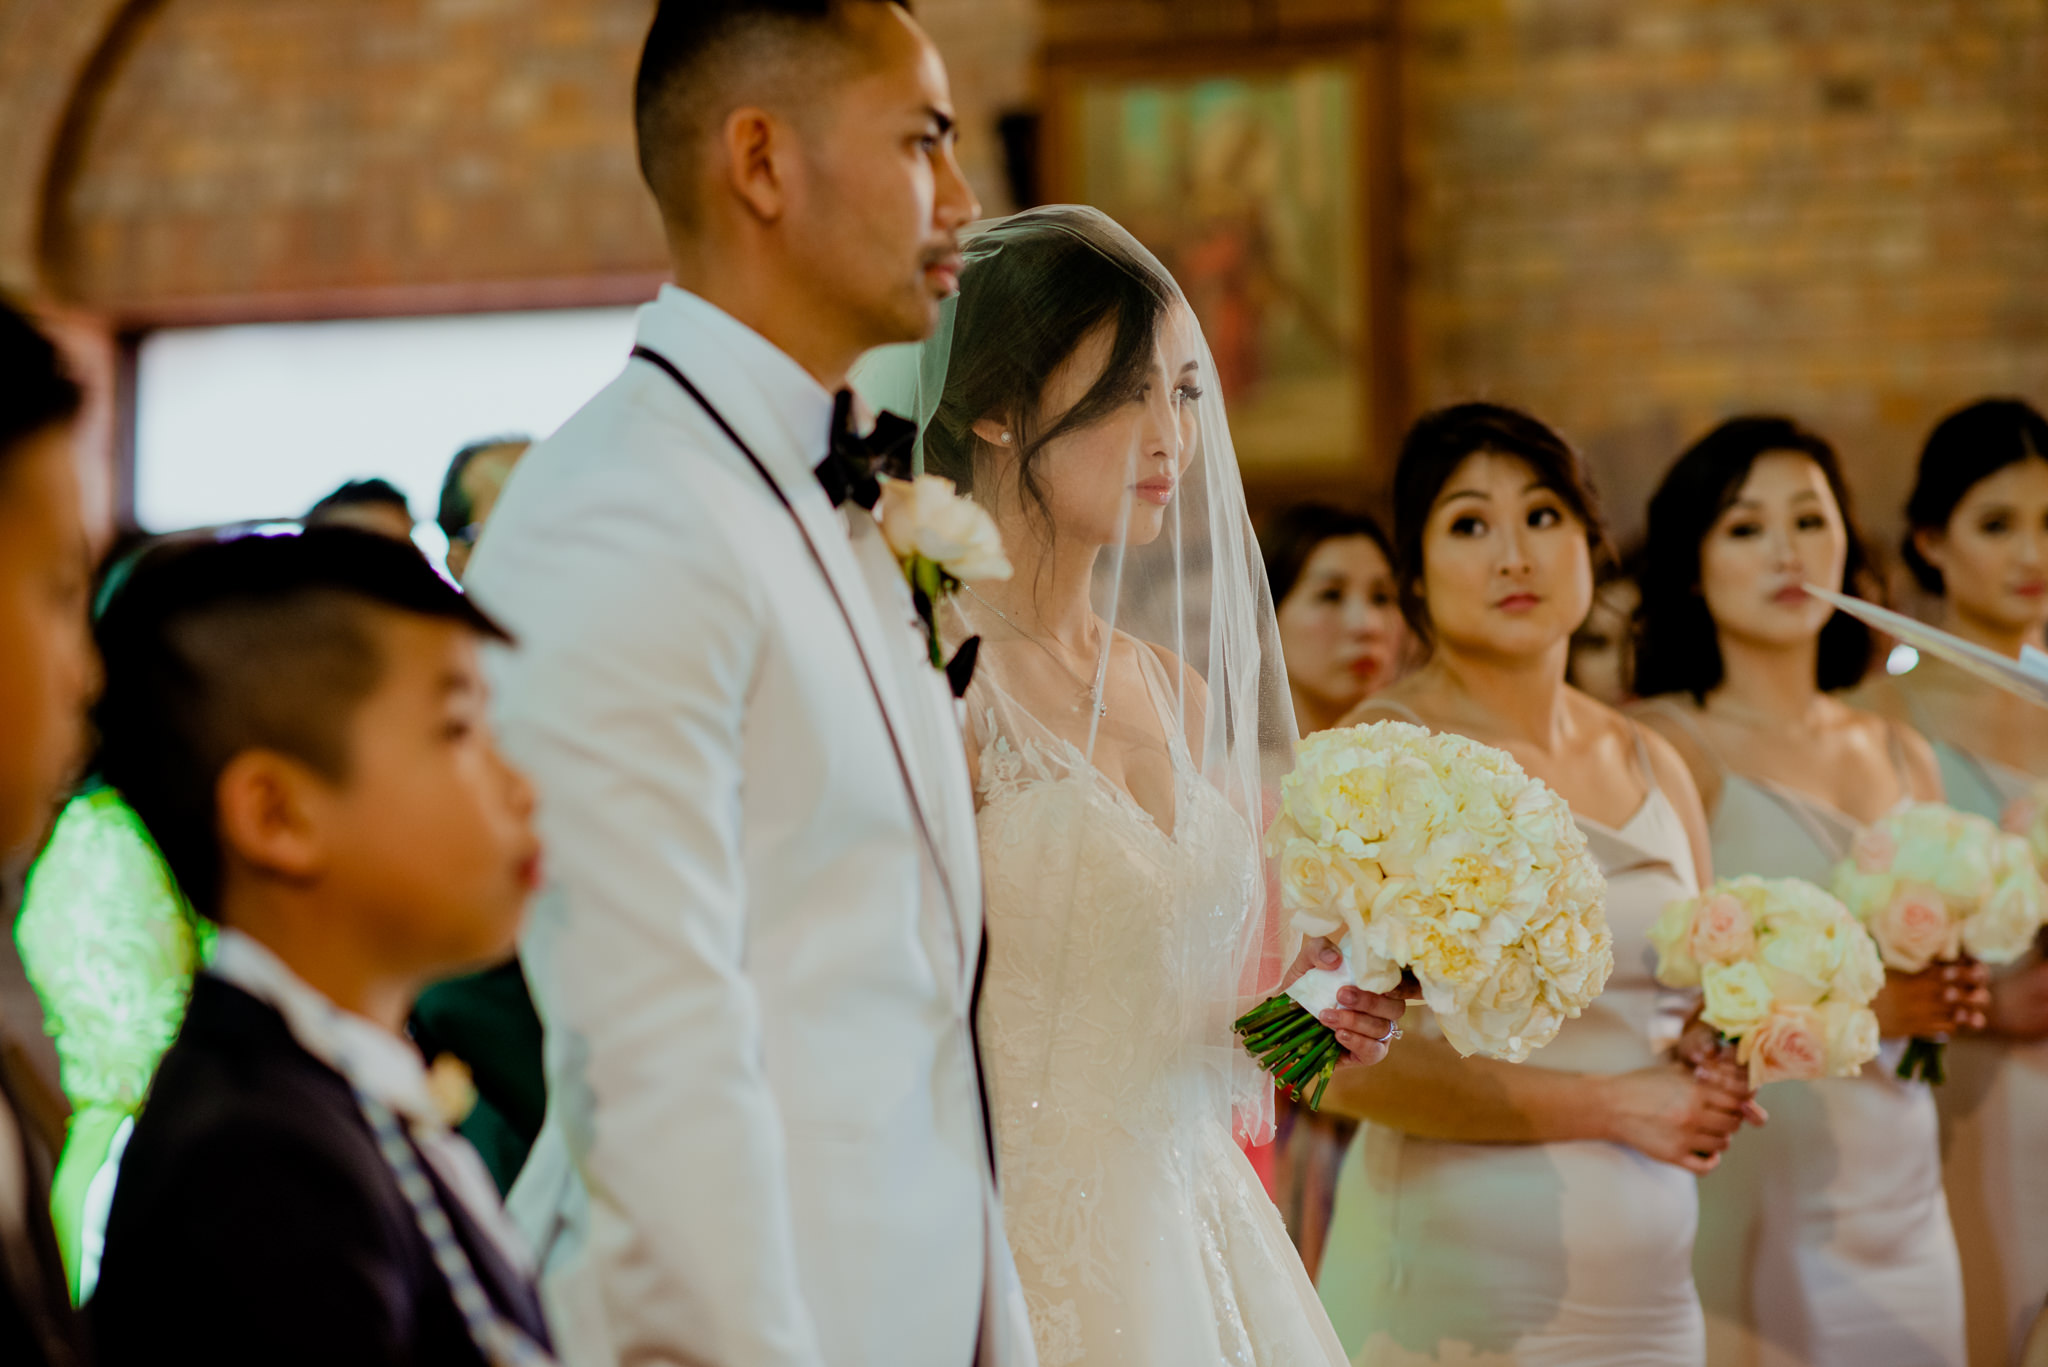 Bride and groom stand during their wedding ceremony